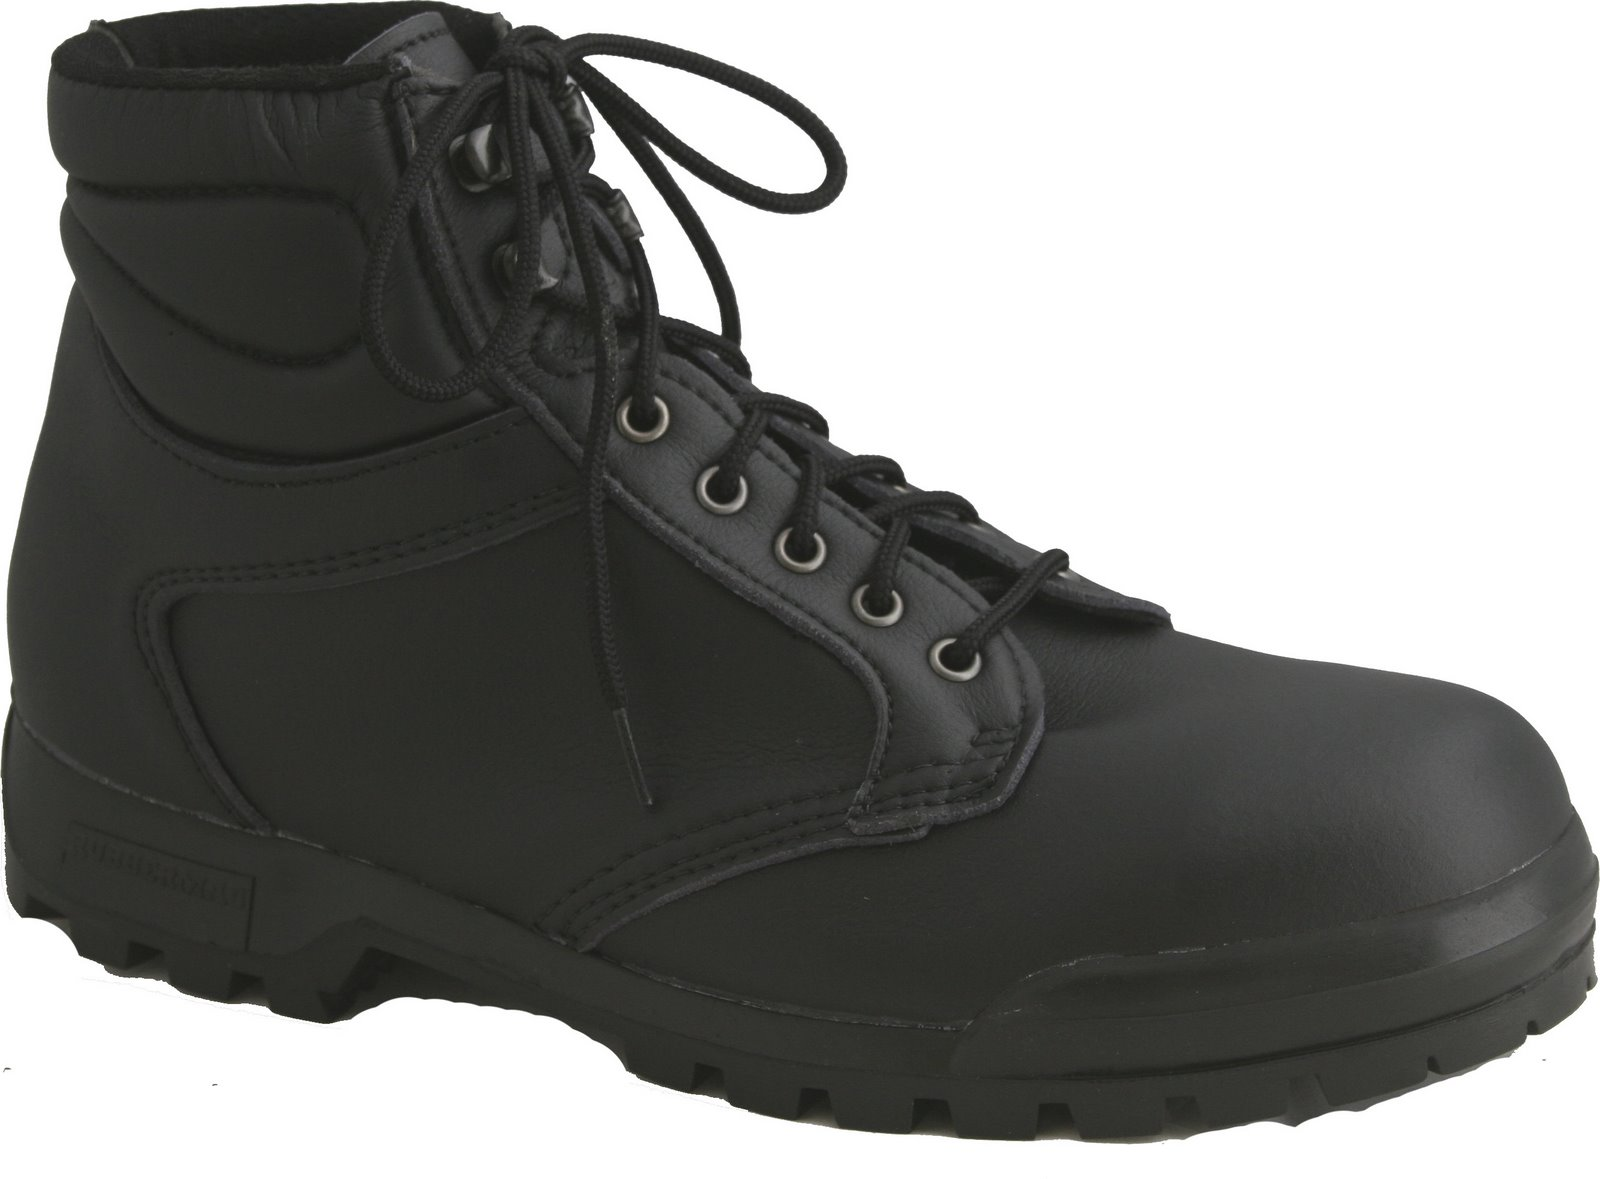 non leather steel toe work boots boot yc